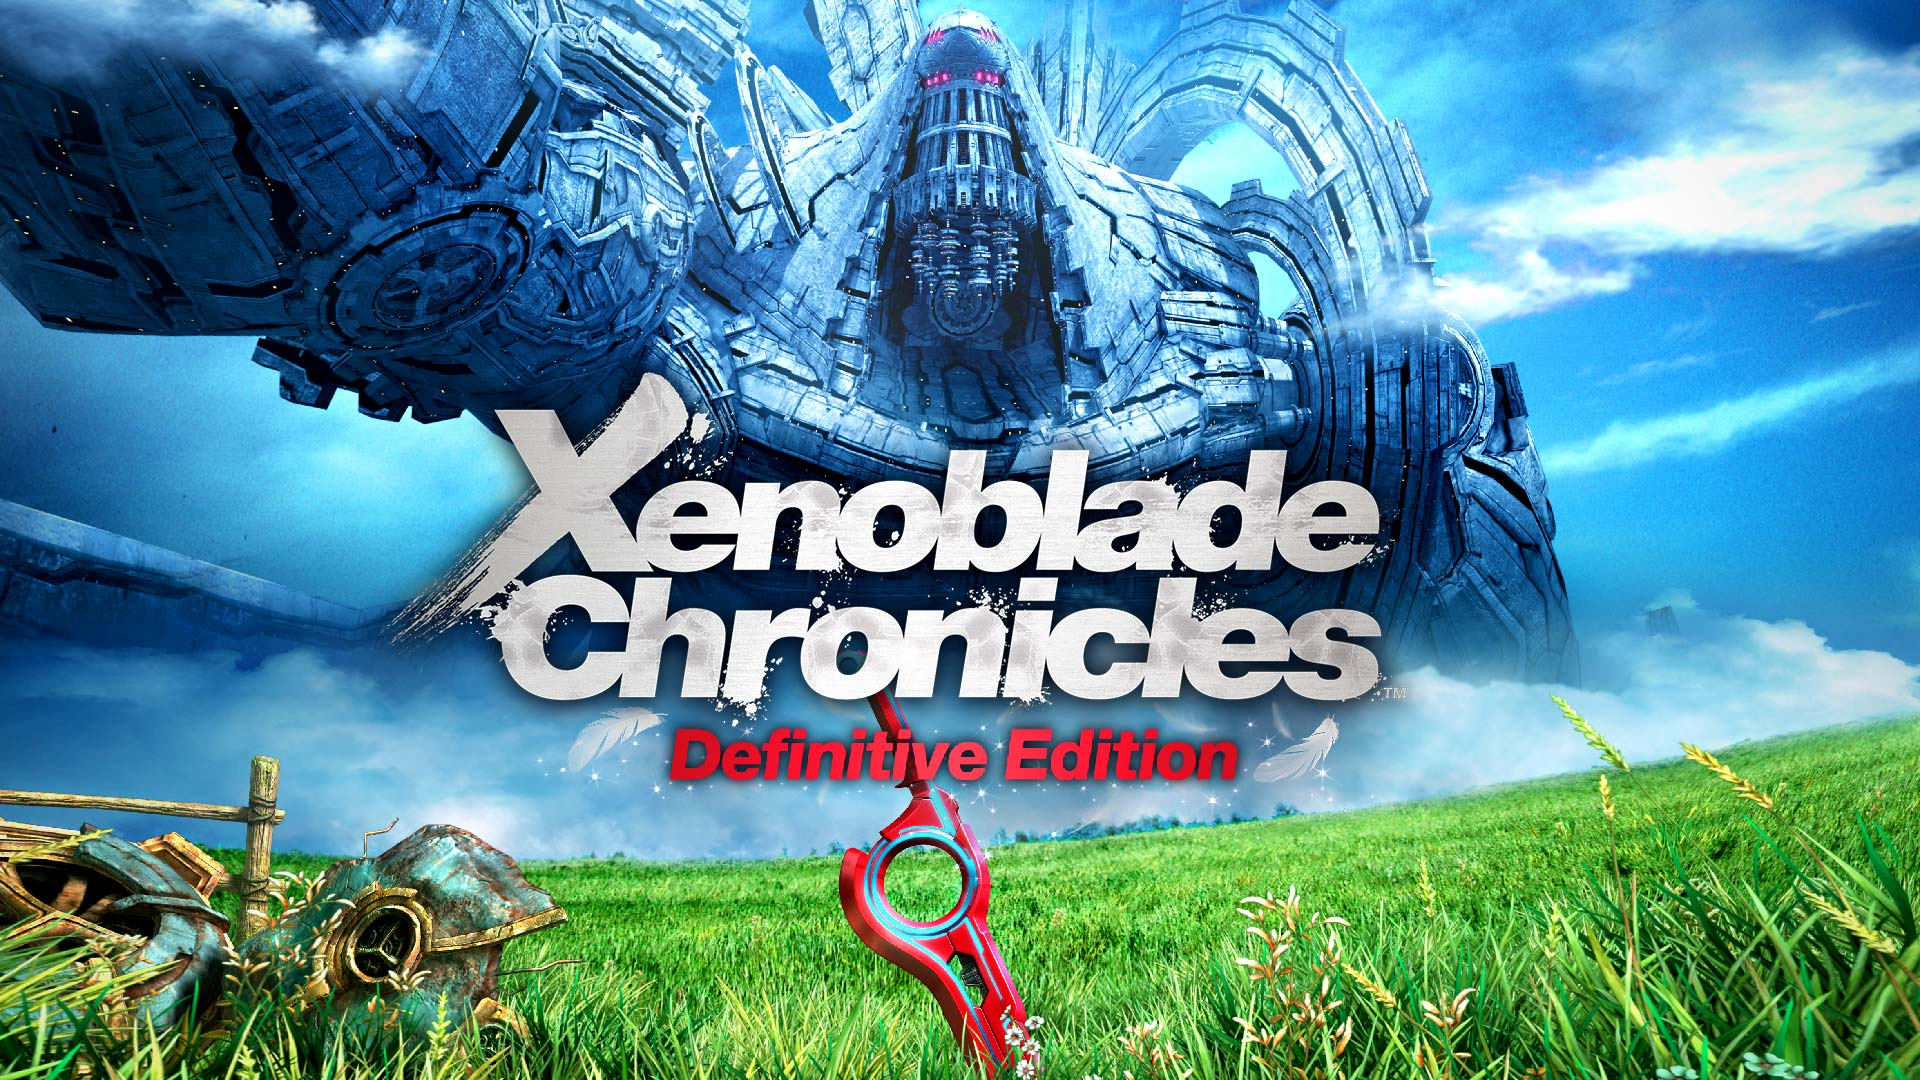 xenoblade chronicles, mobile furnace